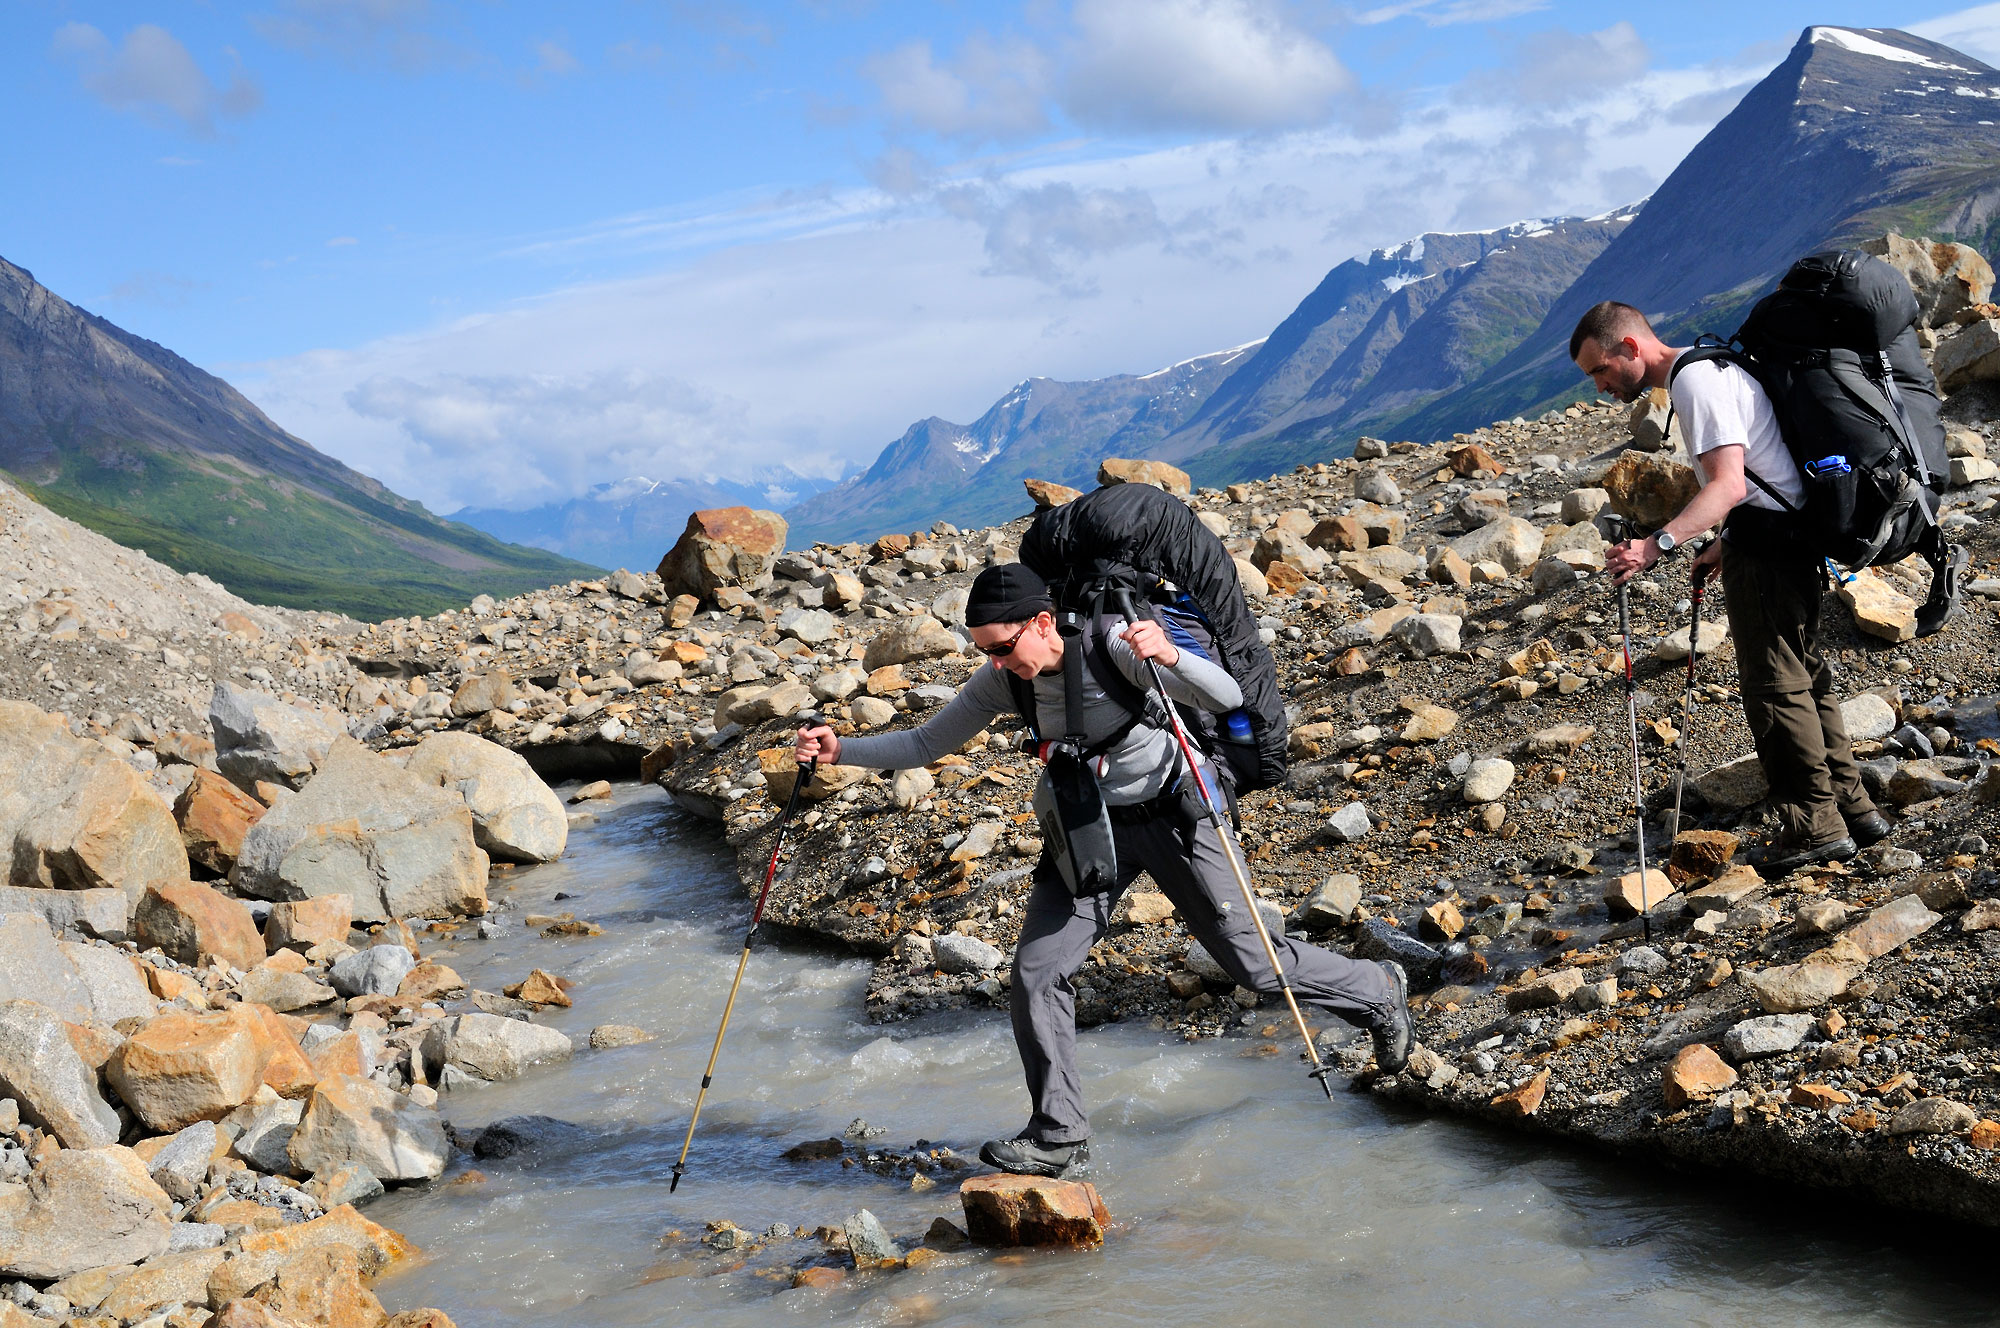 Backpackers crossing a stream on a glacier.